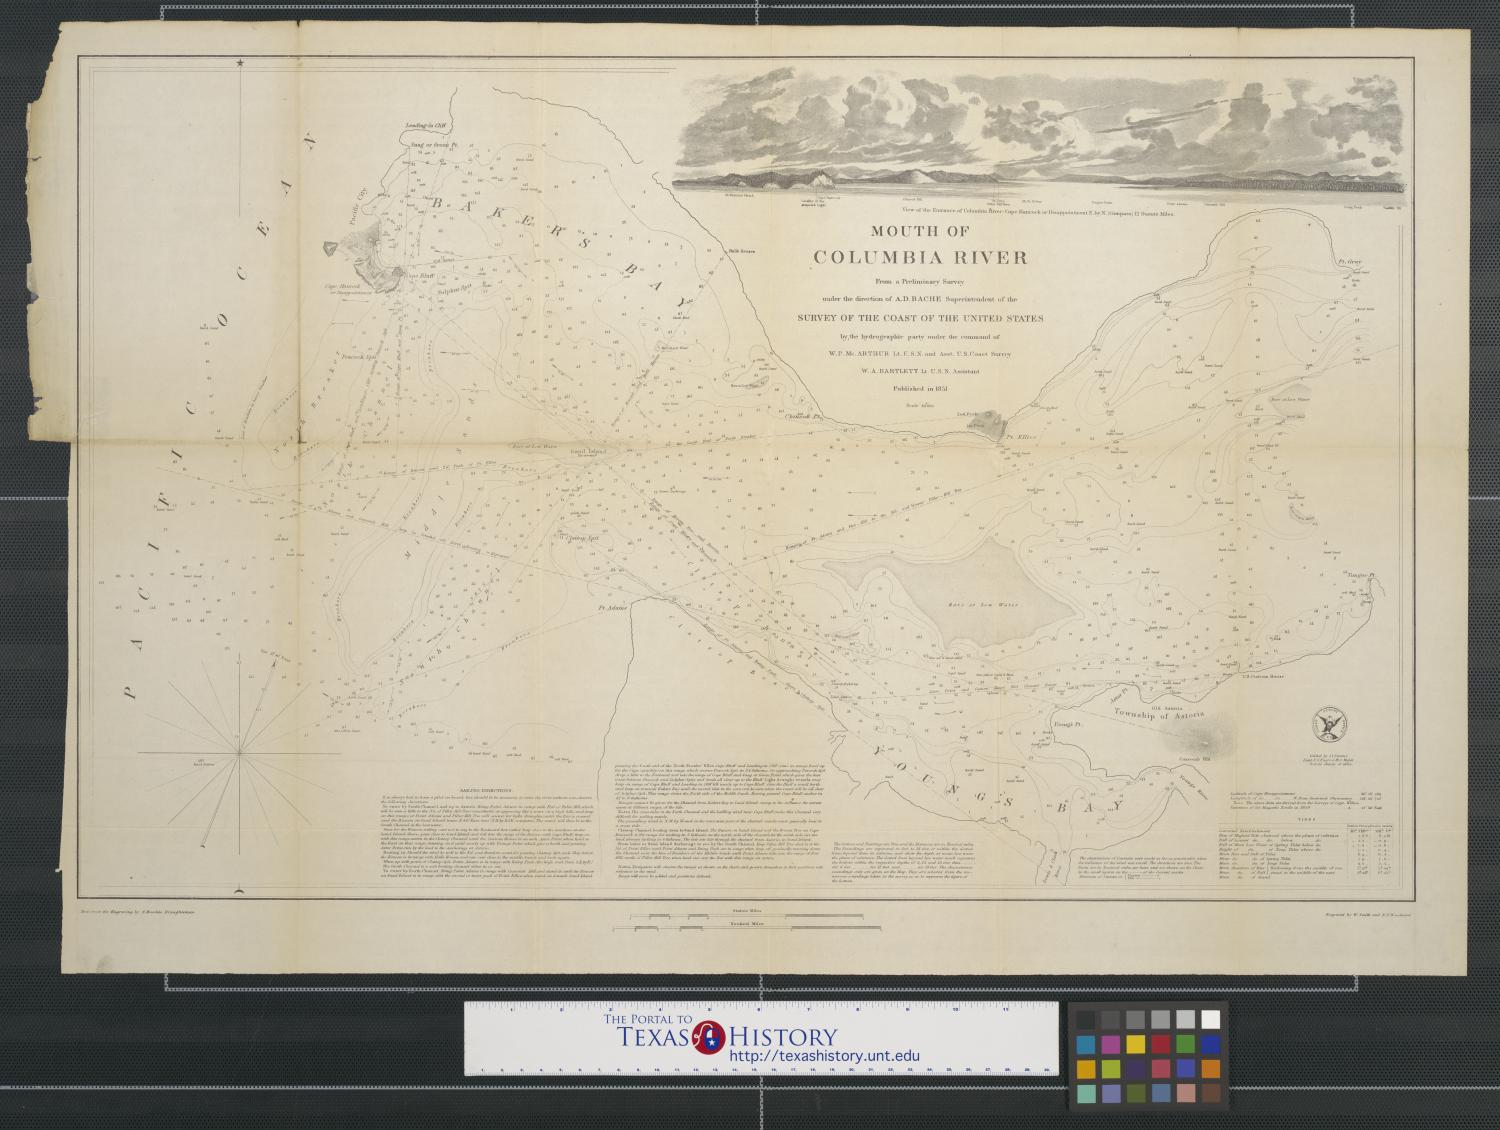 Mouth of columbia river the portal to texas history nvjuhfo Image collections